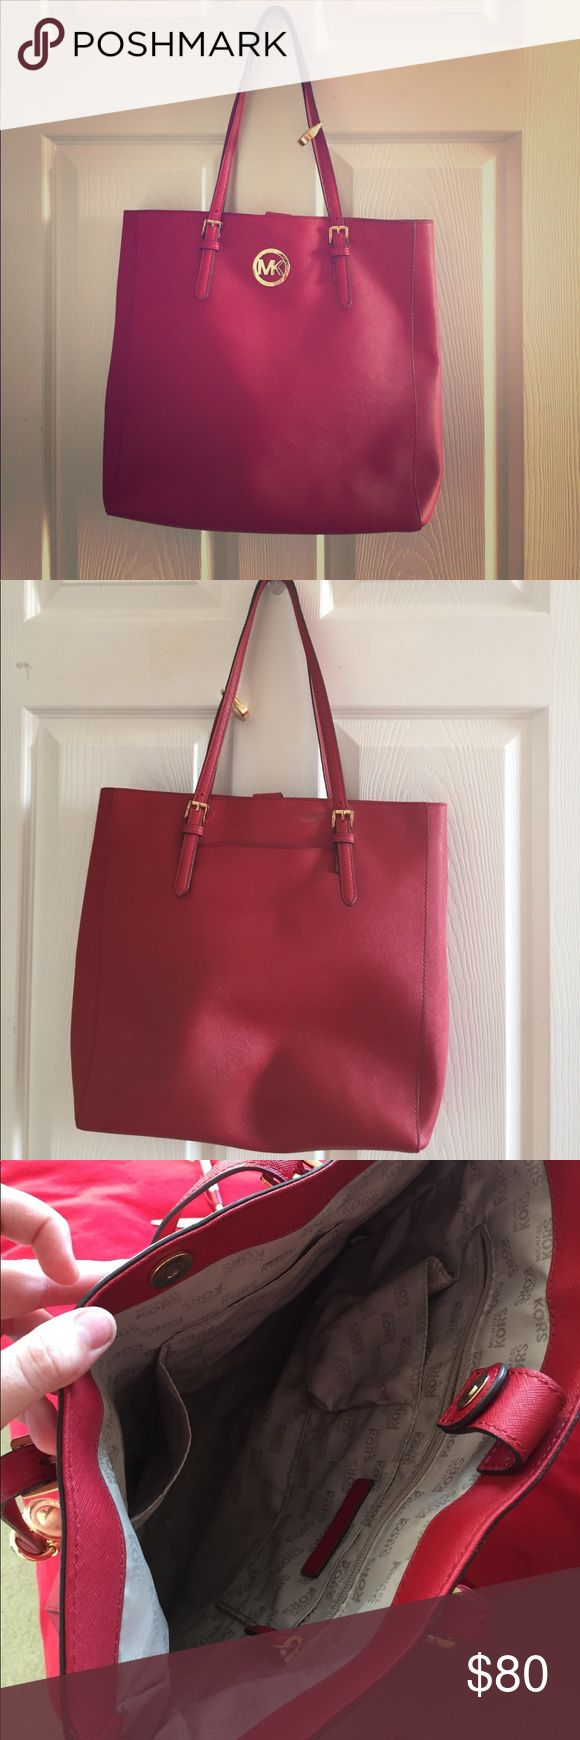 Red Micheal Kors shoulder bag Red shoulder bag from Michael Kors in good condition. No scuffs Michael Kors Bags Shoulder Bags